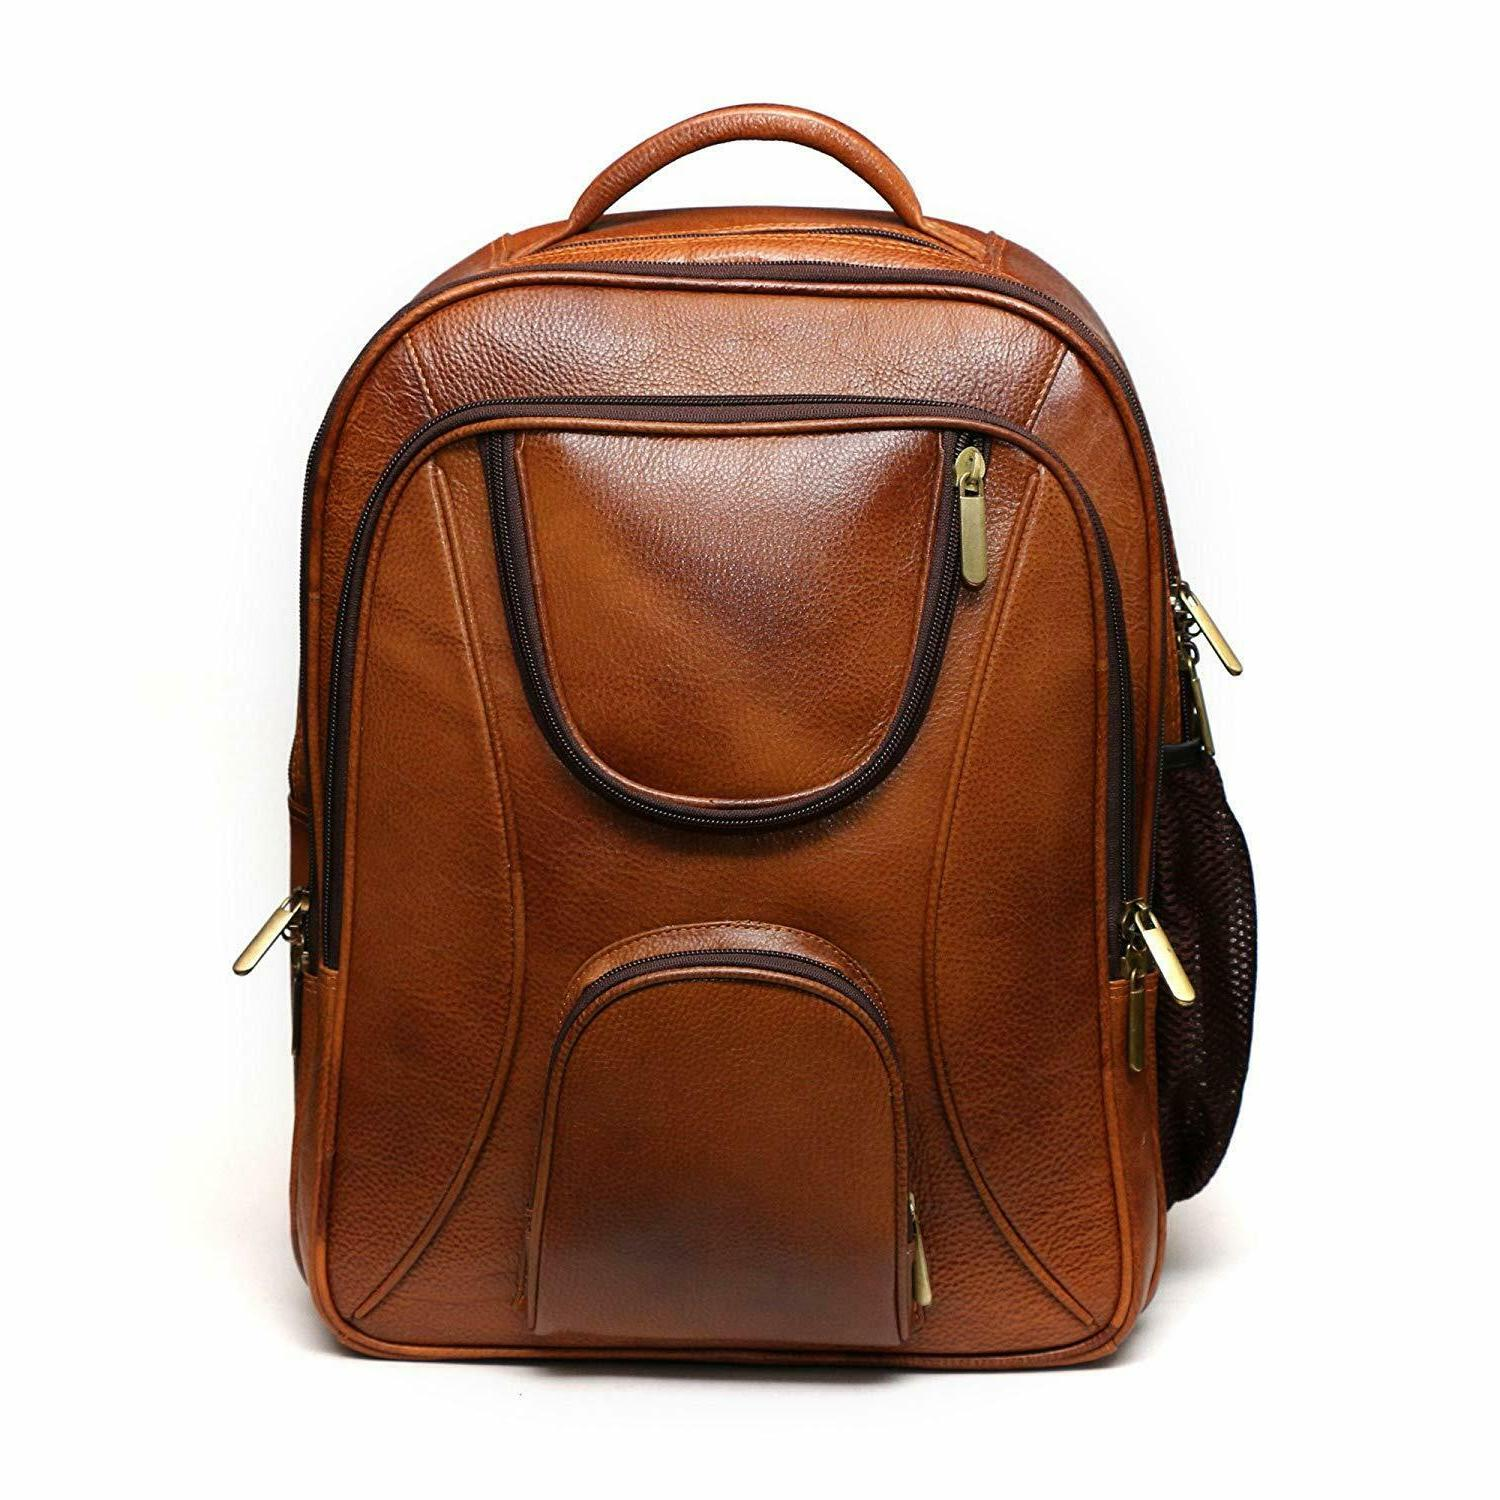 accessories leather brown laptop backpack travel bag